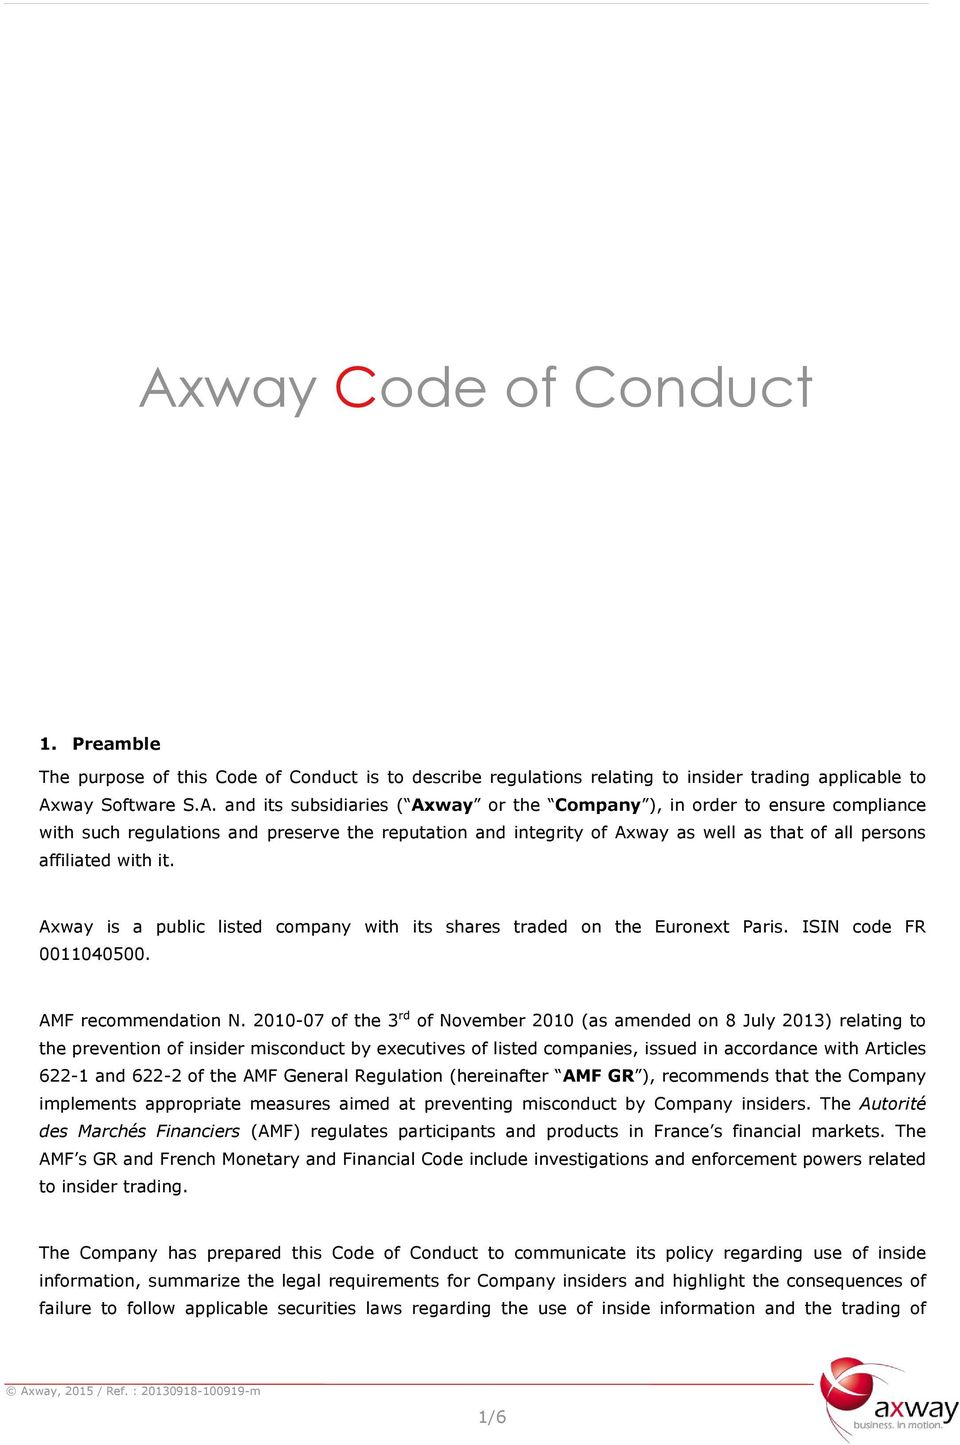 Axway is a public listed company with its shares traded on the Euronext Paris. ISIN code FR 0011040500. AMF recommendation N.